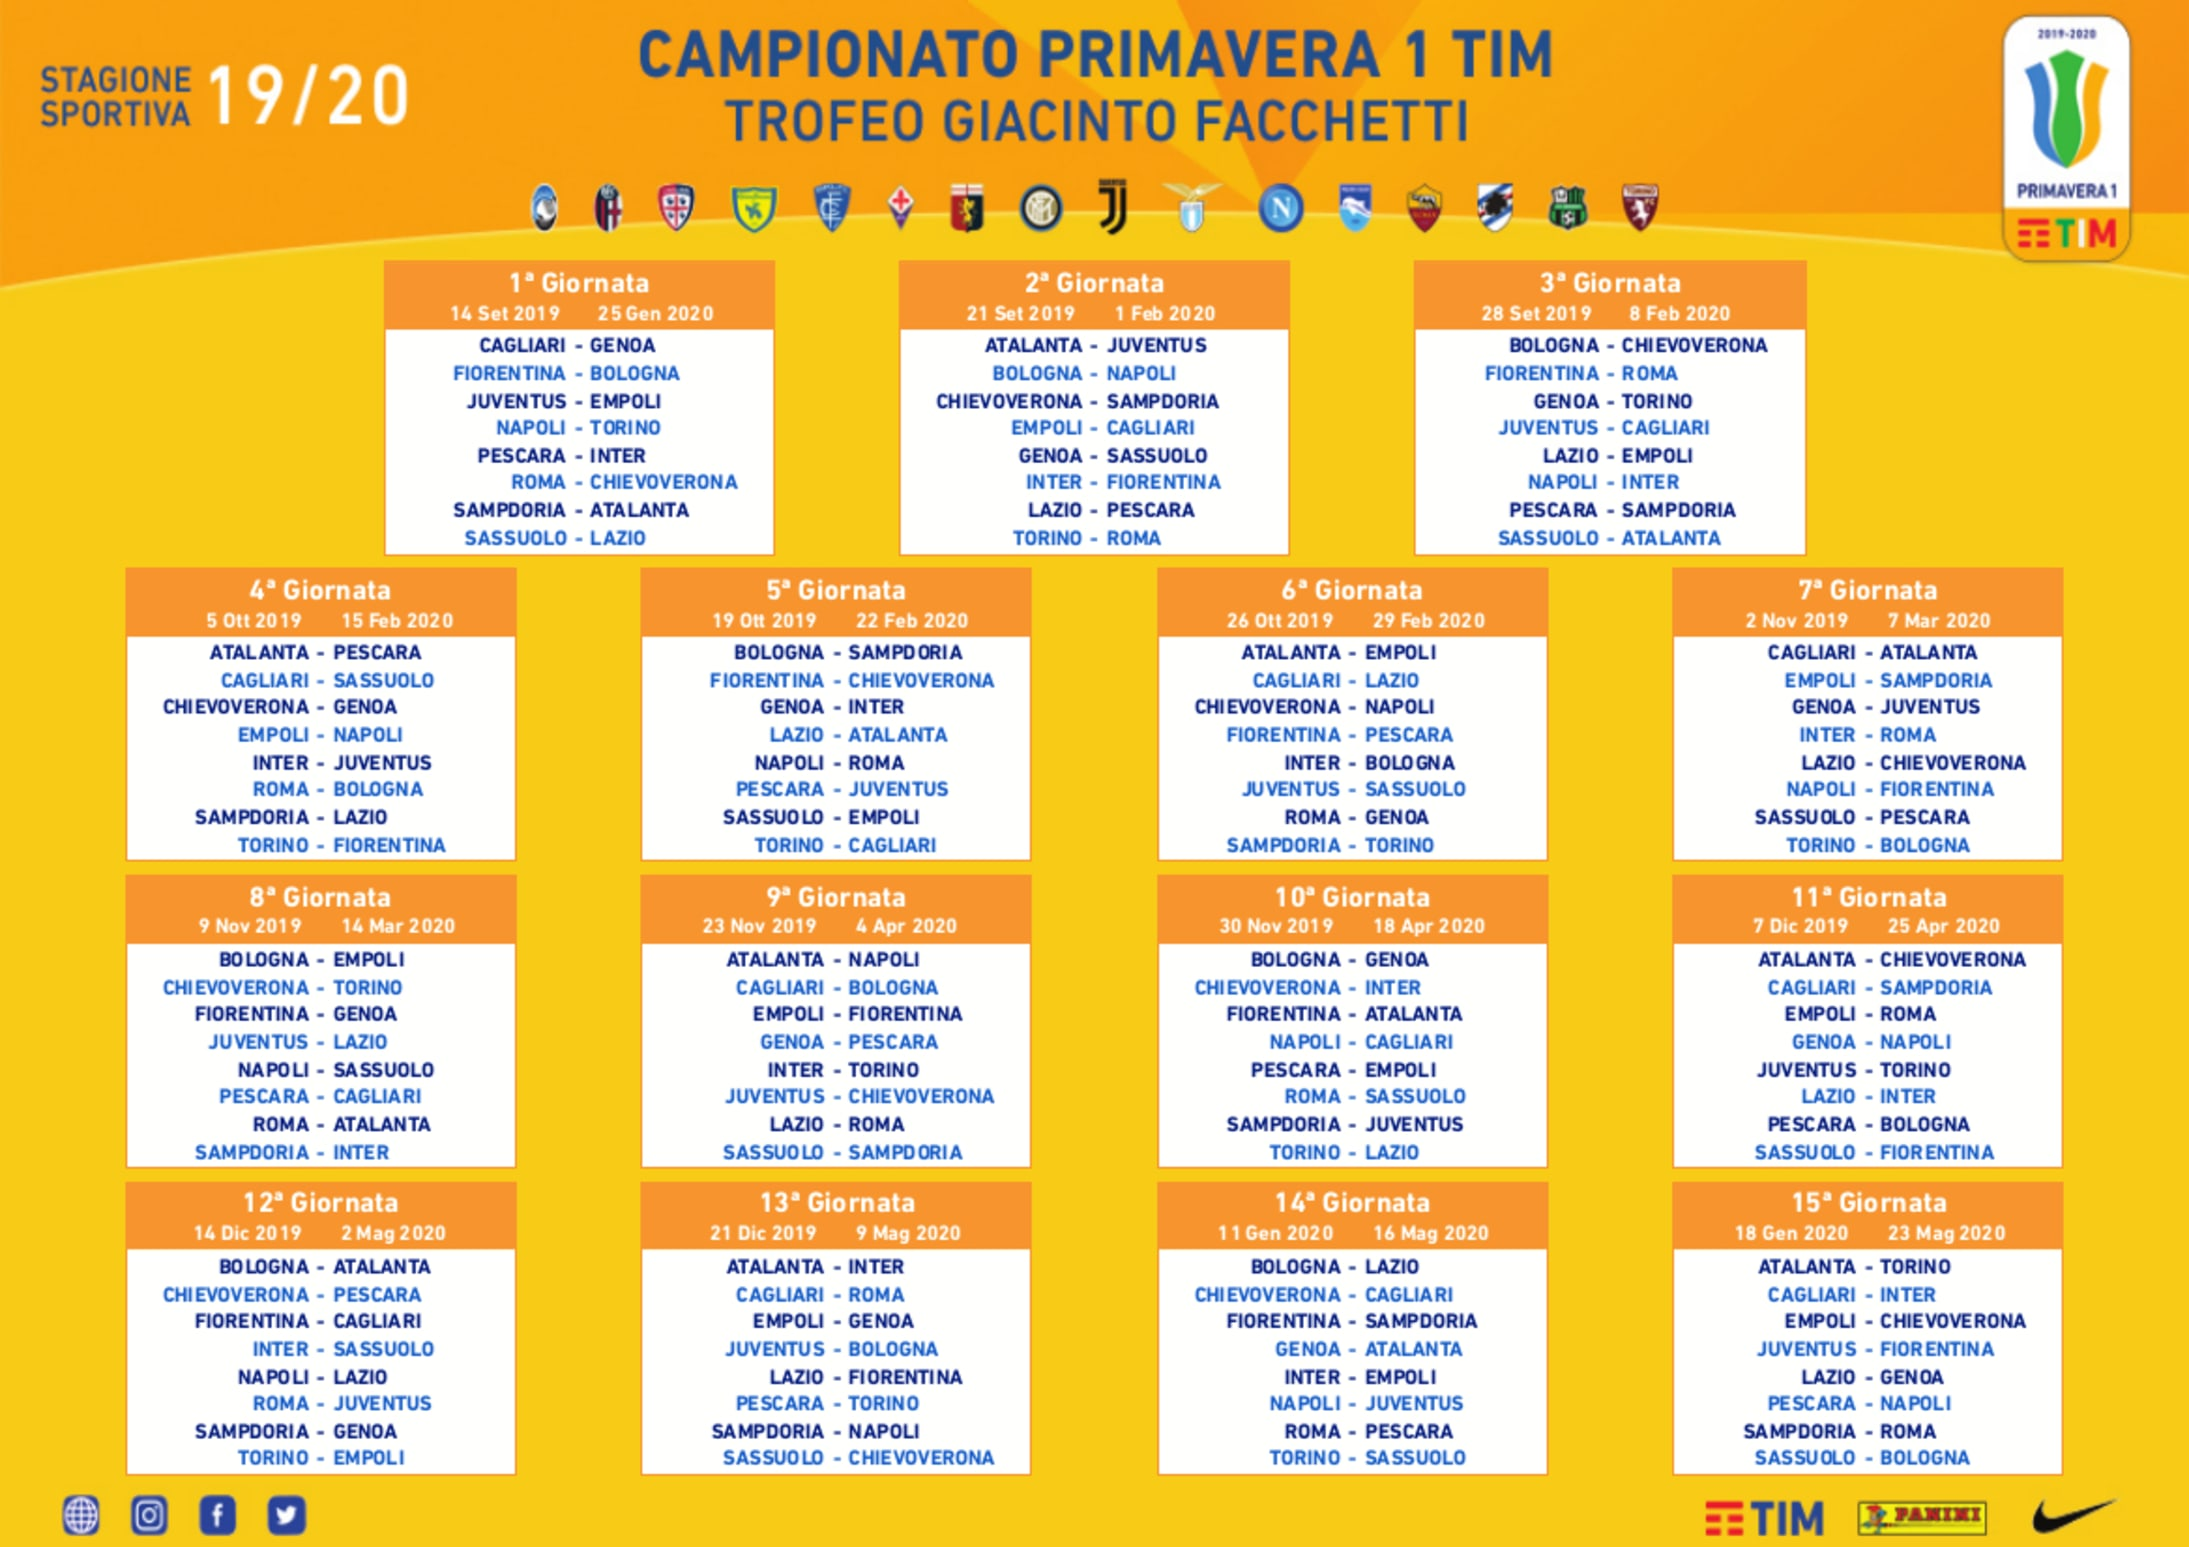 Interit Calendario.Fixture List Set For Primavera Campaign